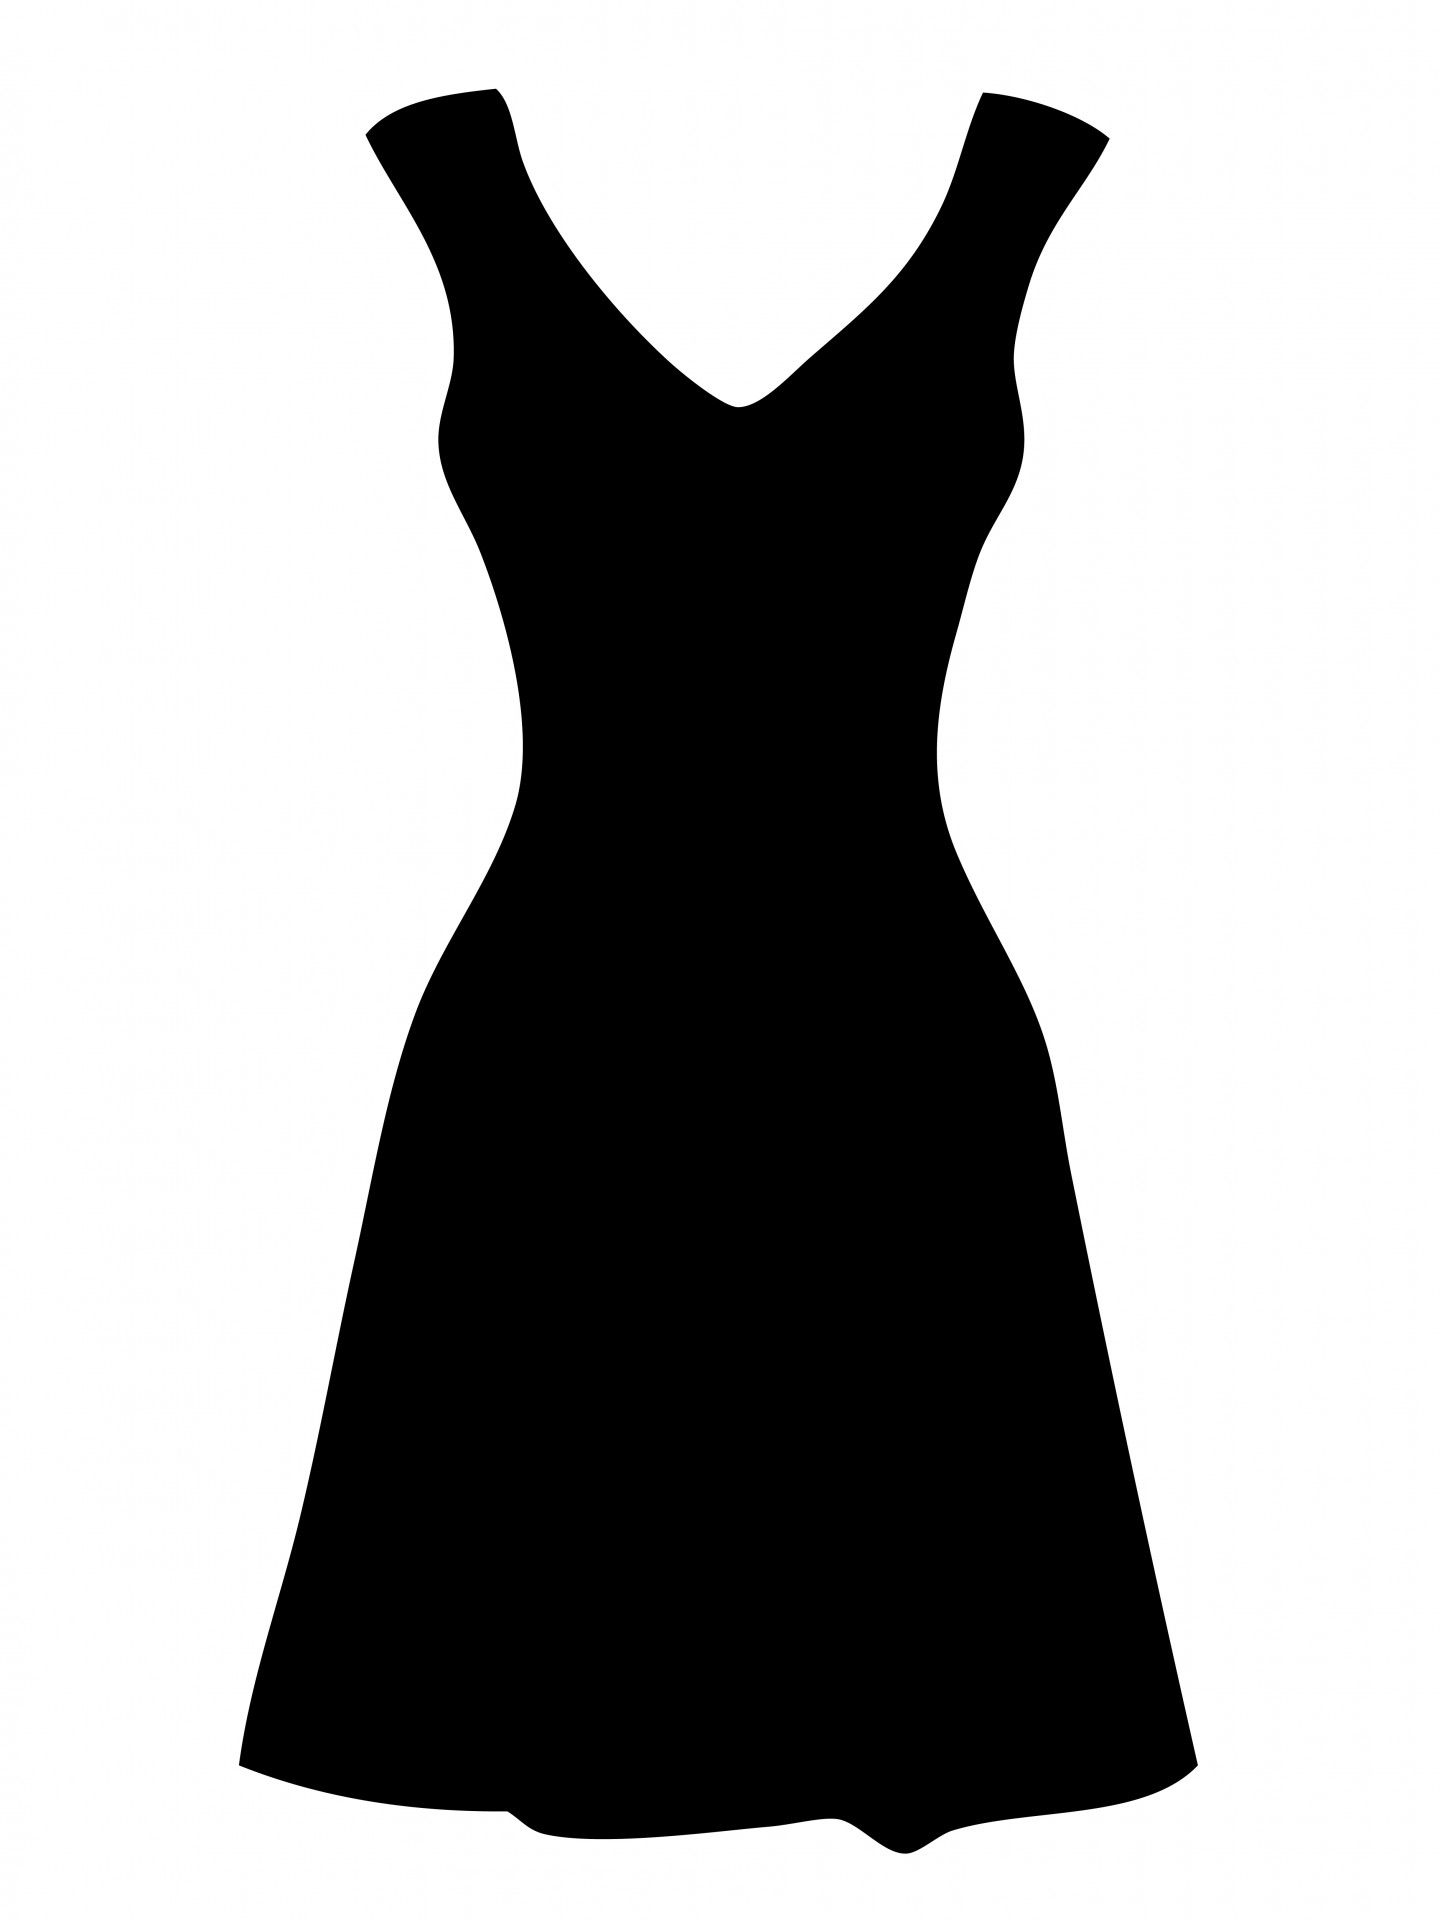 free clipart of dresses black dress clipart by karen arnold rh pinterest com dress clip art images dress clip art bride